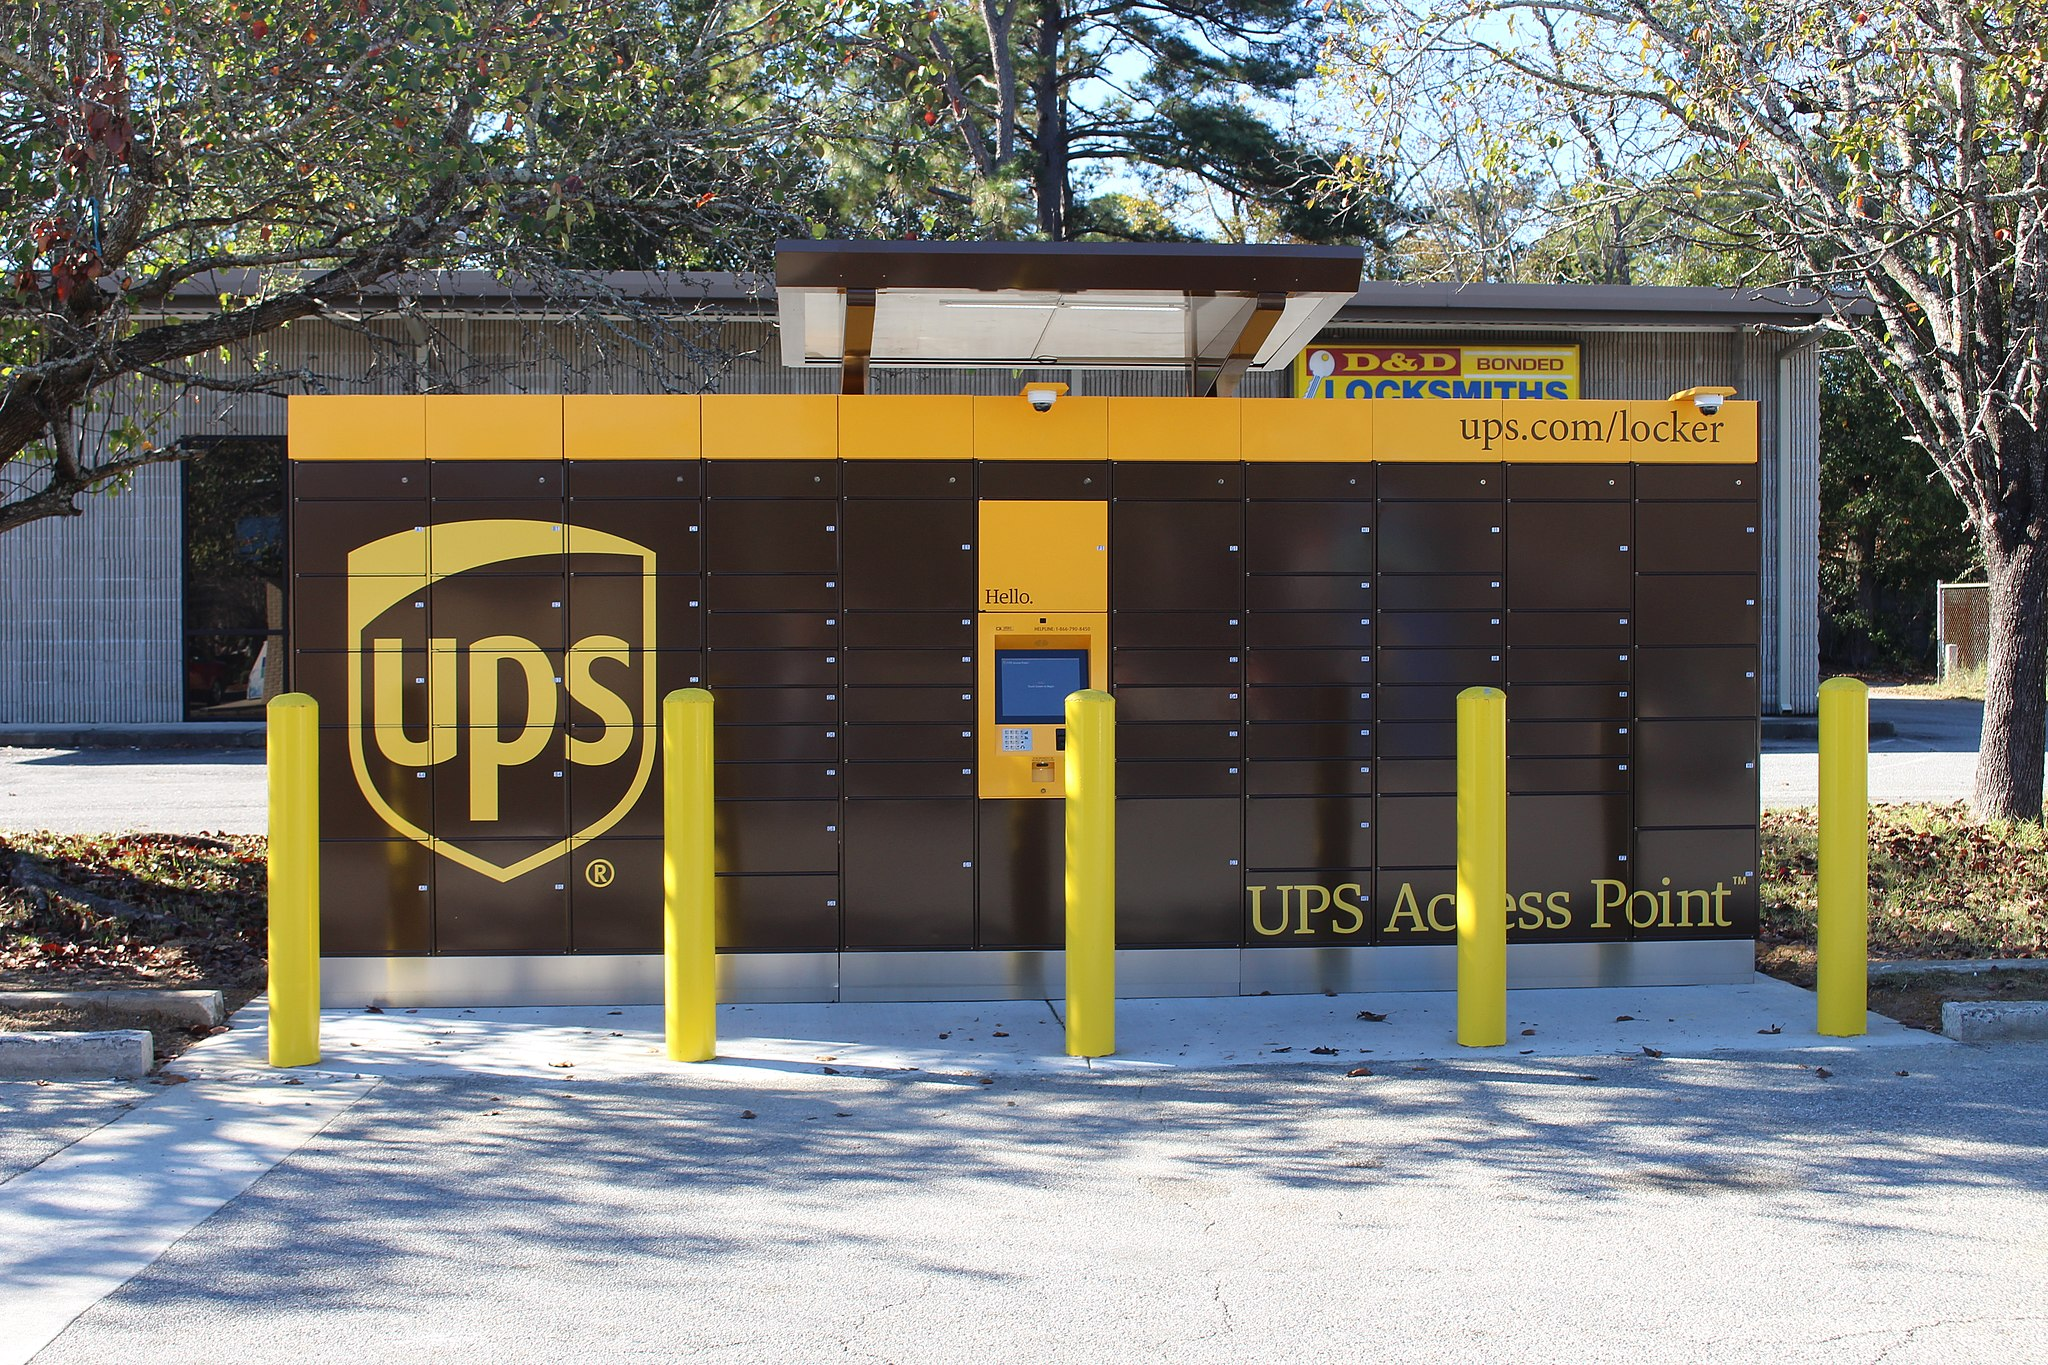 ups_access_point_lockers_valdosta